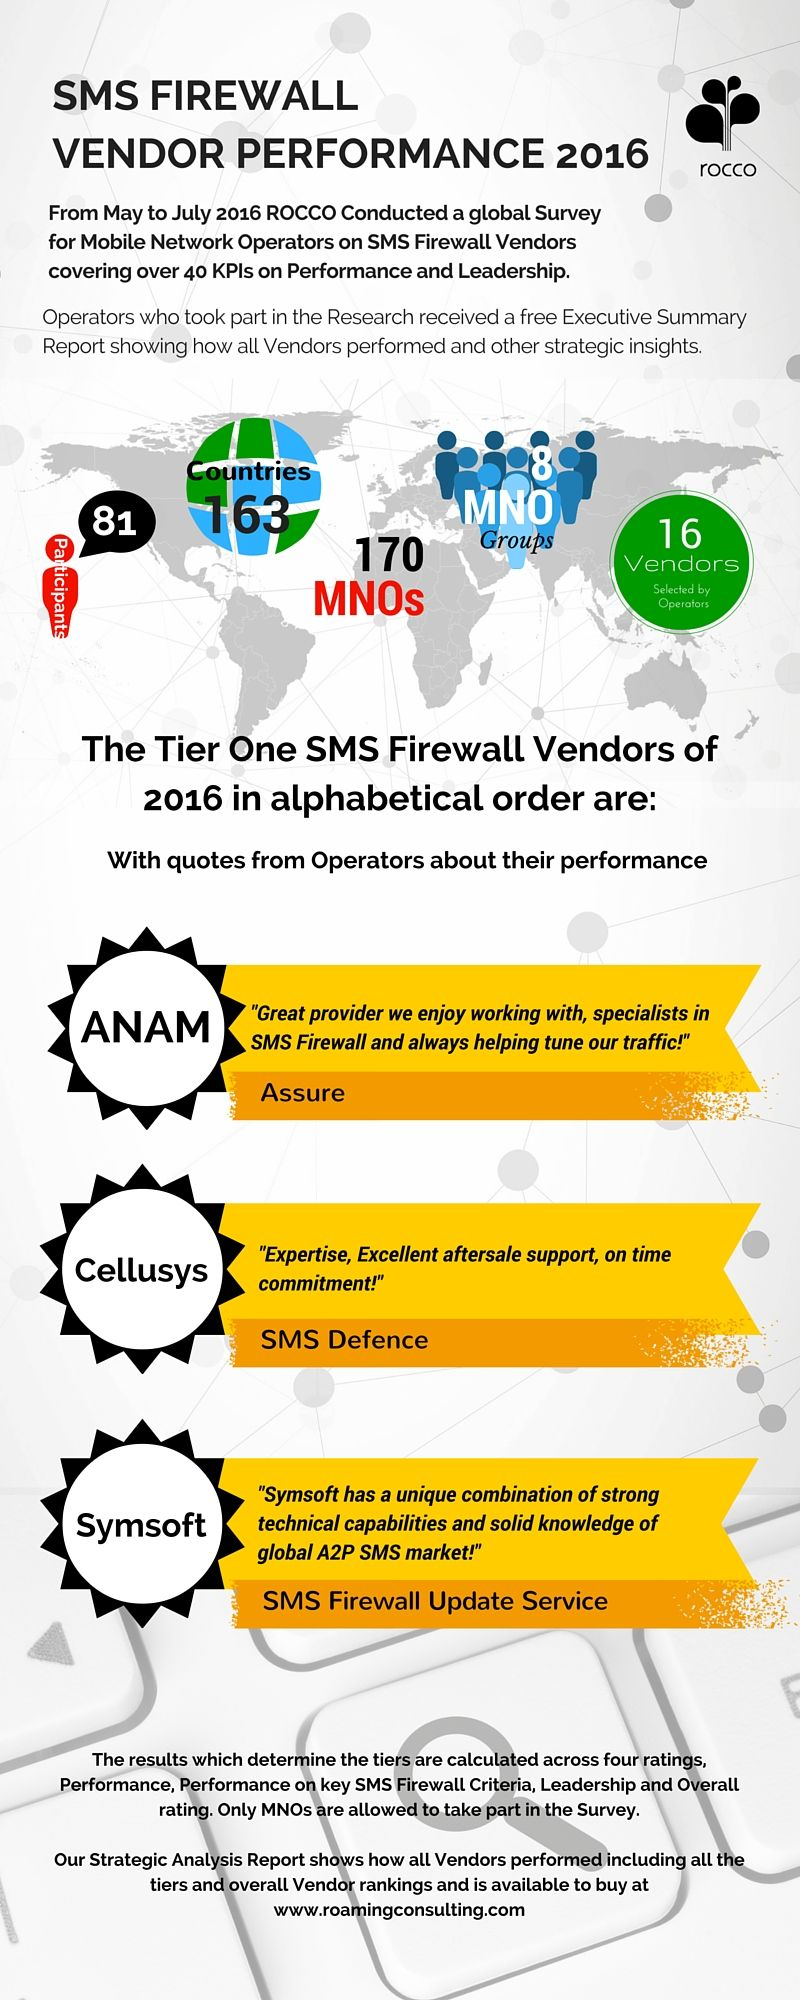 ROCCO SMS Firewall Vendor Performance 2016 - Tier One Providers-2